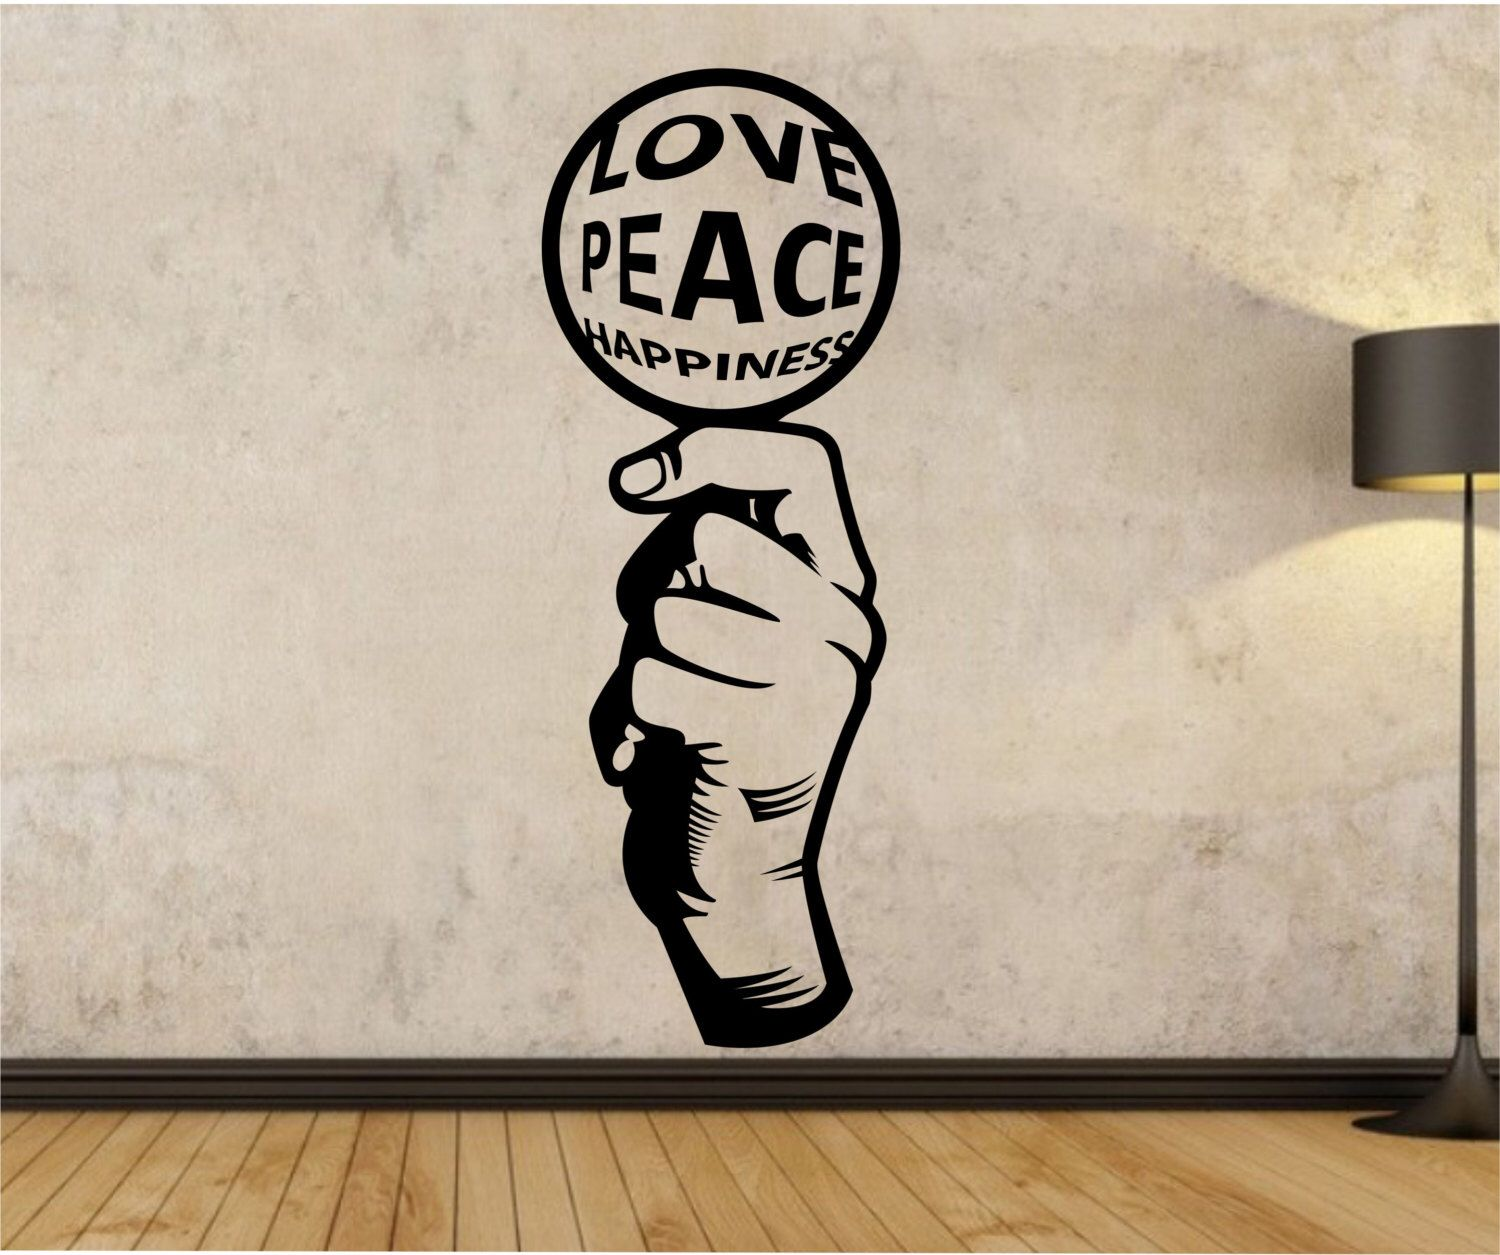 Peace Decorations For Bedrooms Love Peace Happiness Wall Decal Sticker Art Decor Bedroom Design